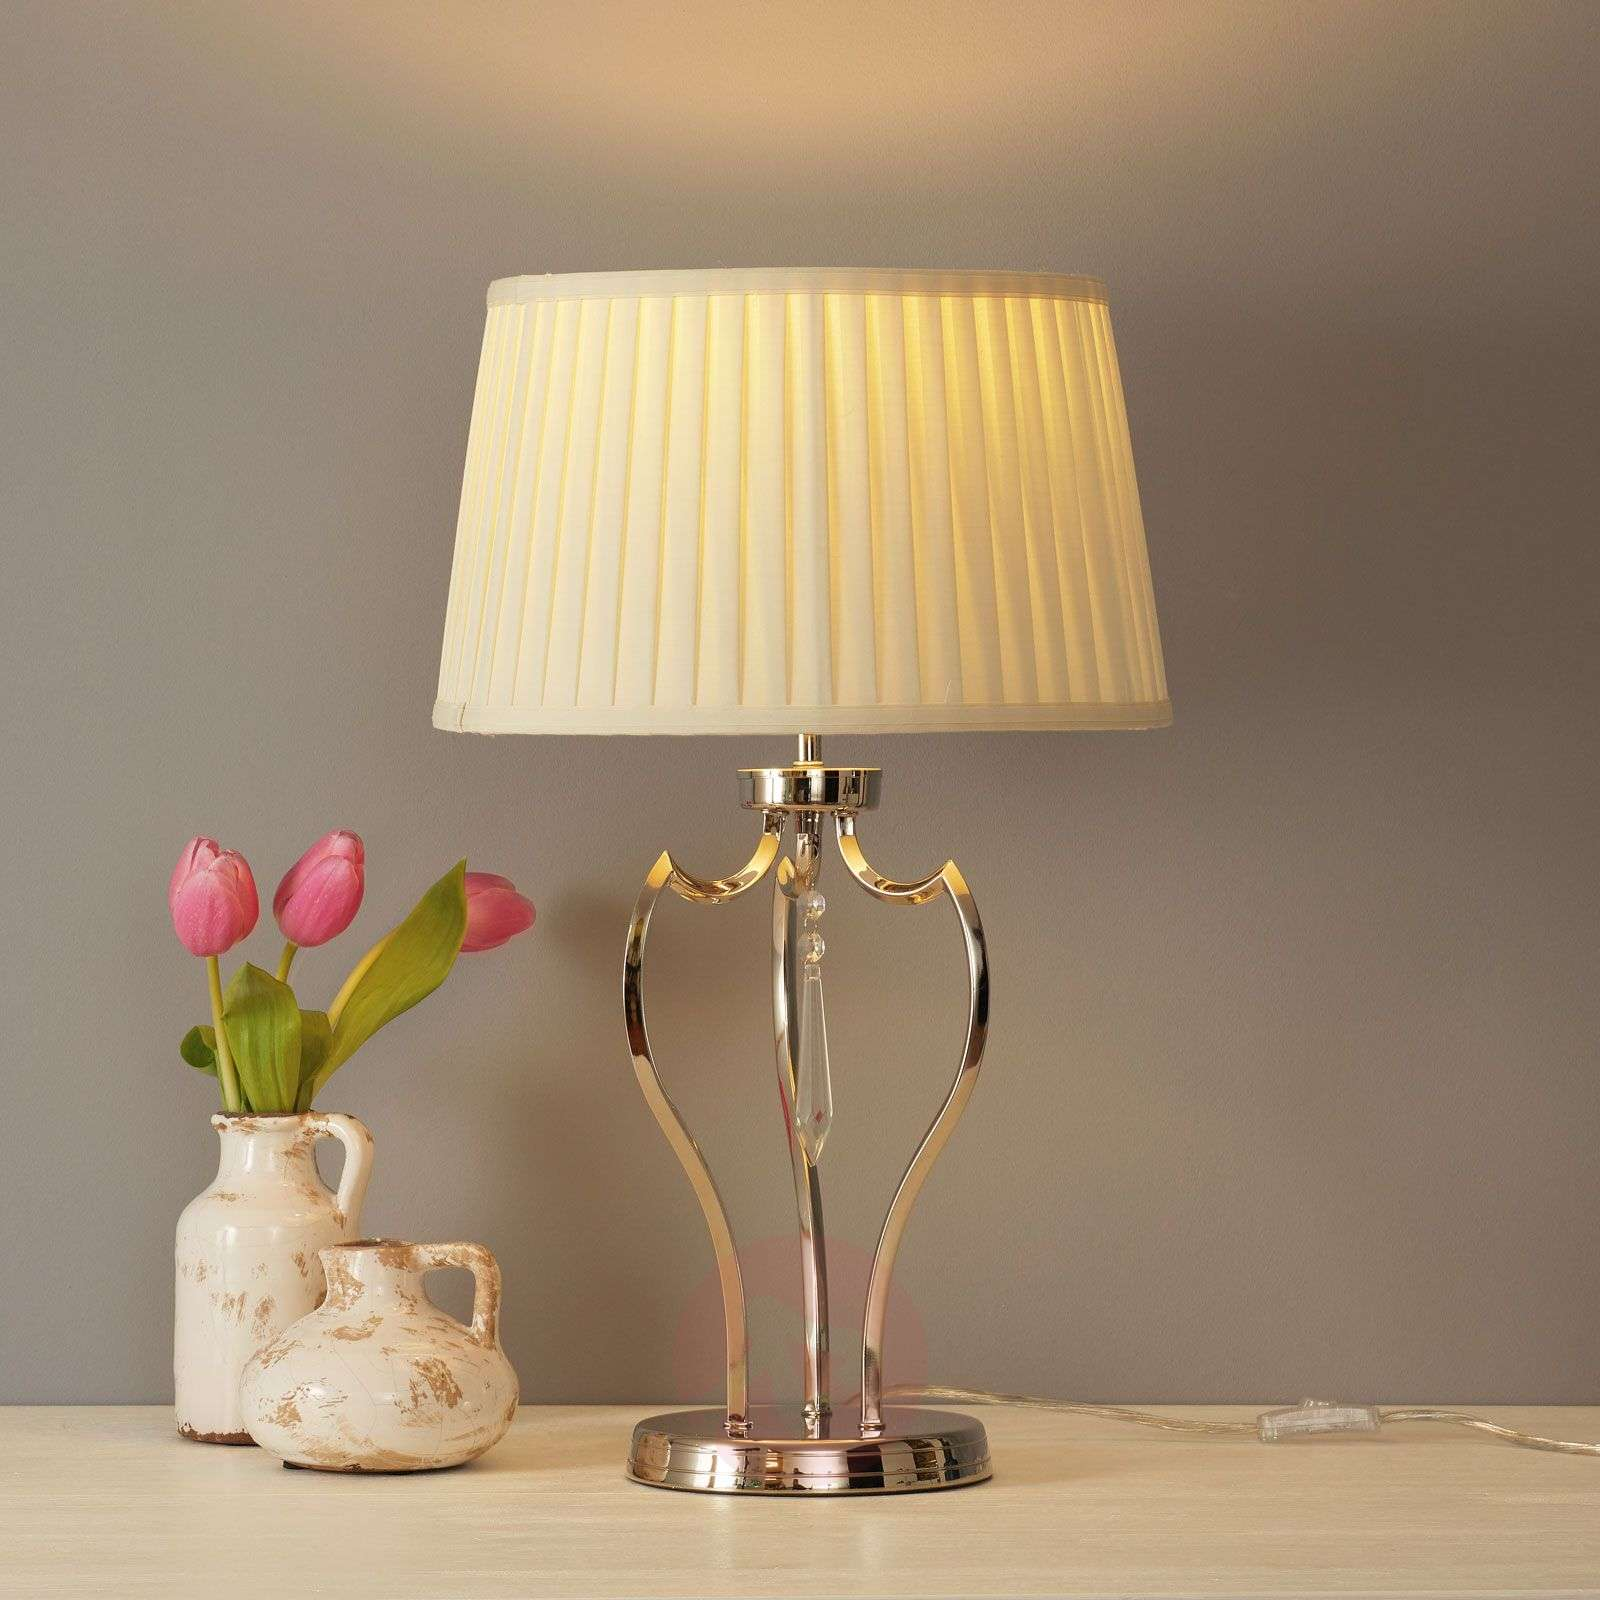 Shaded fabric table lamp Pimlico-3048593-01